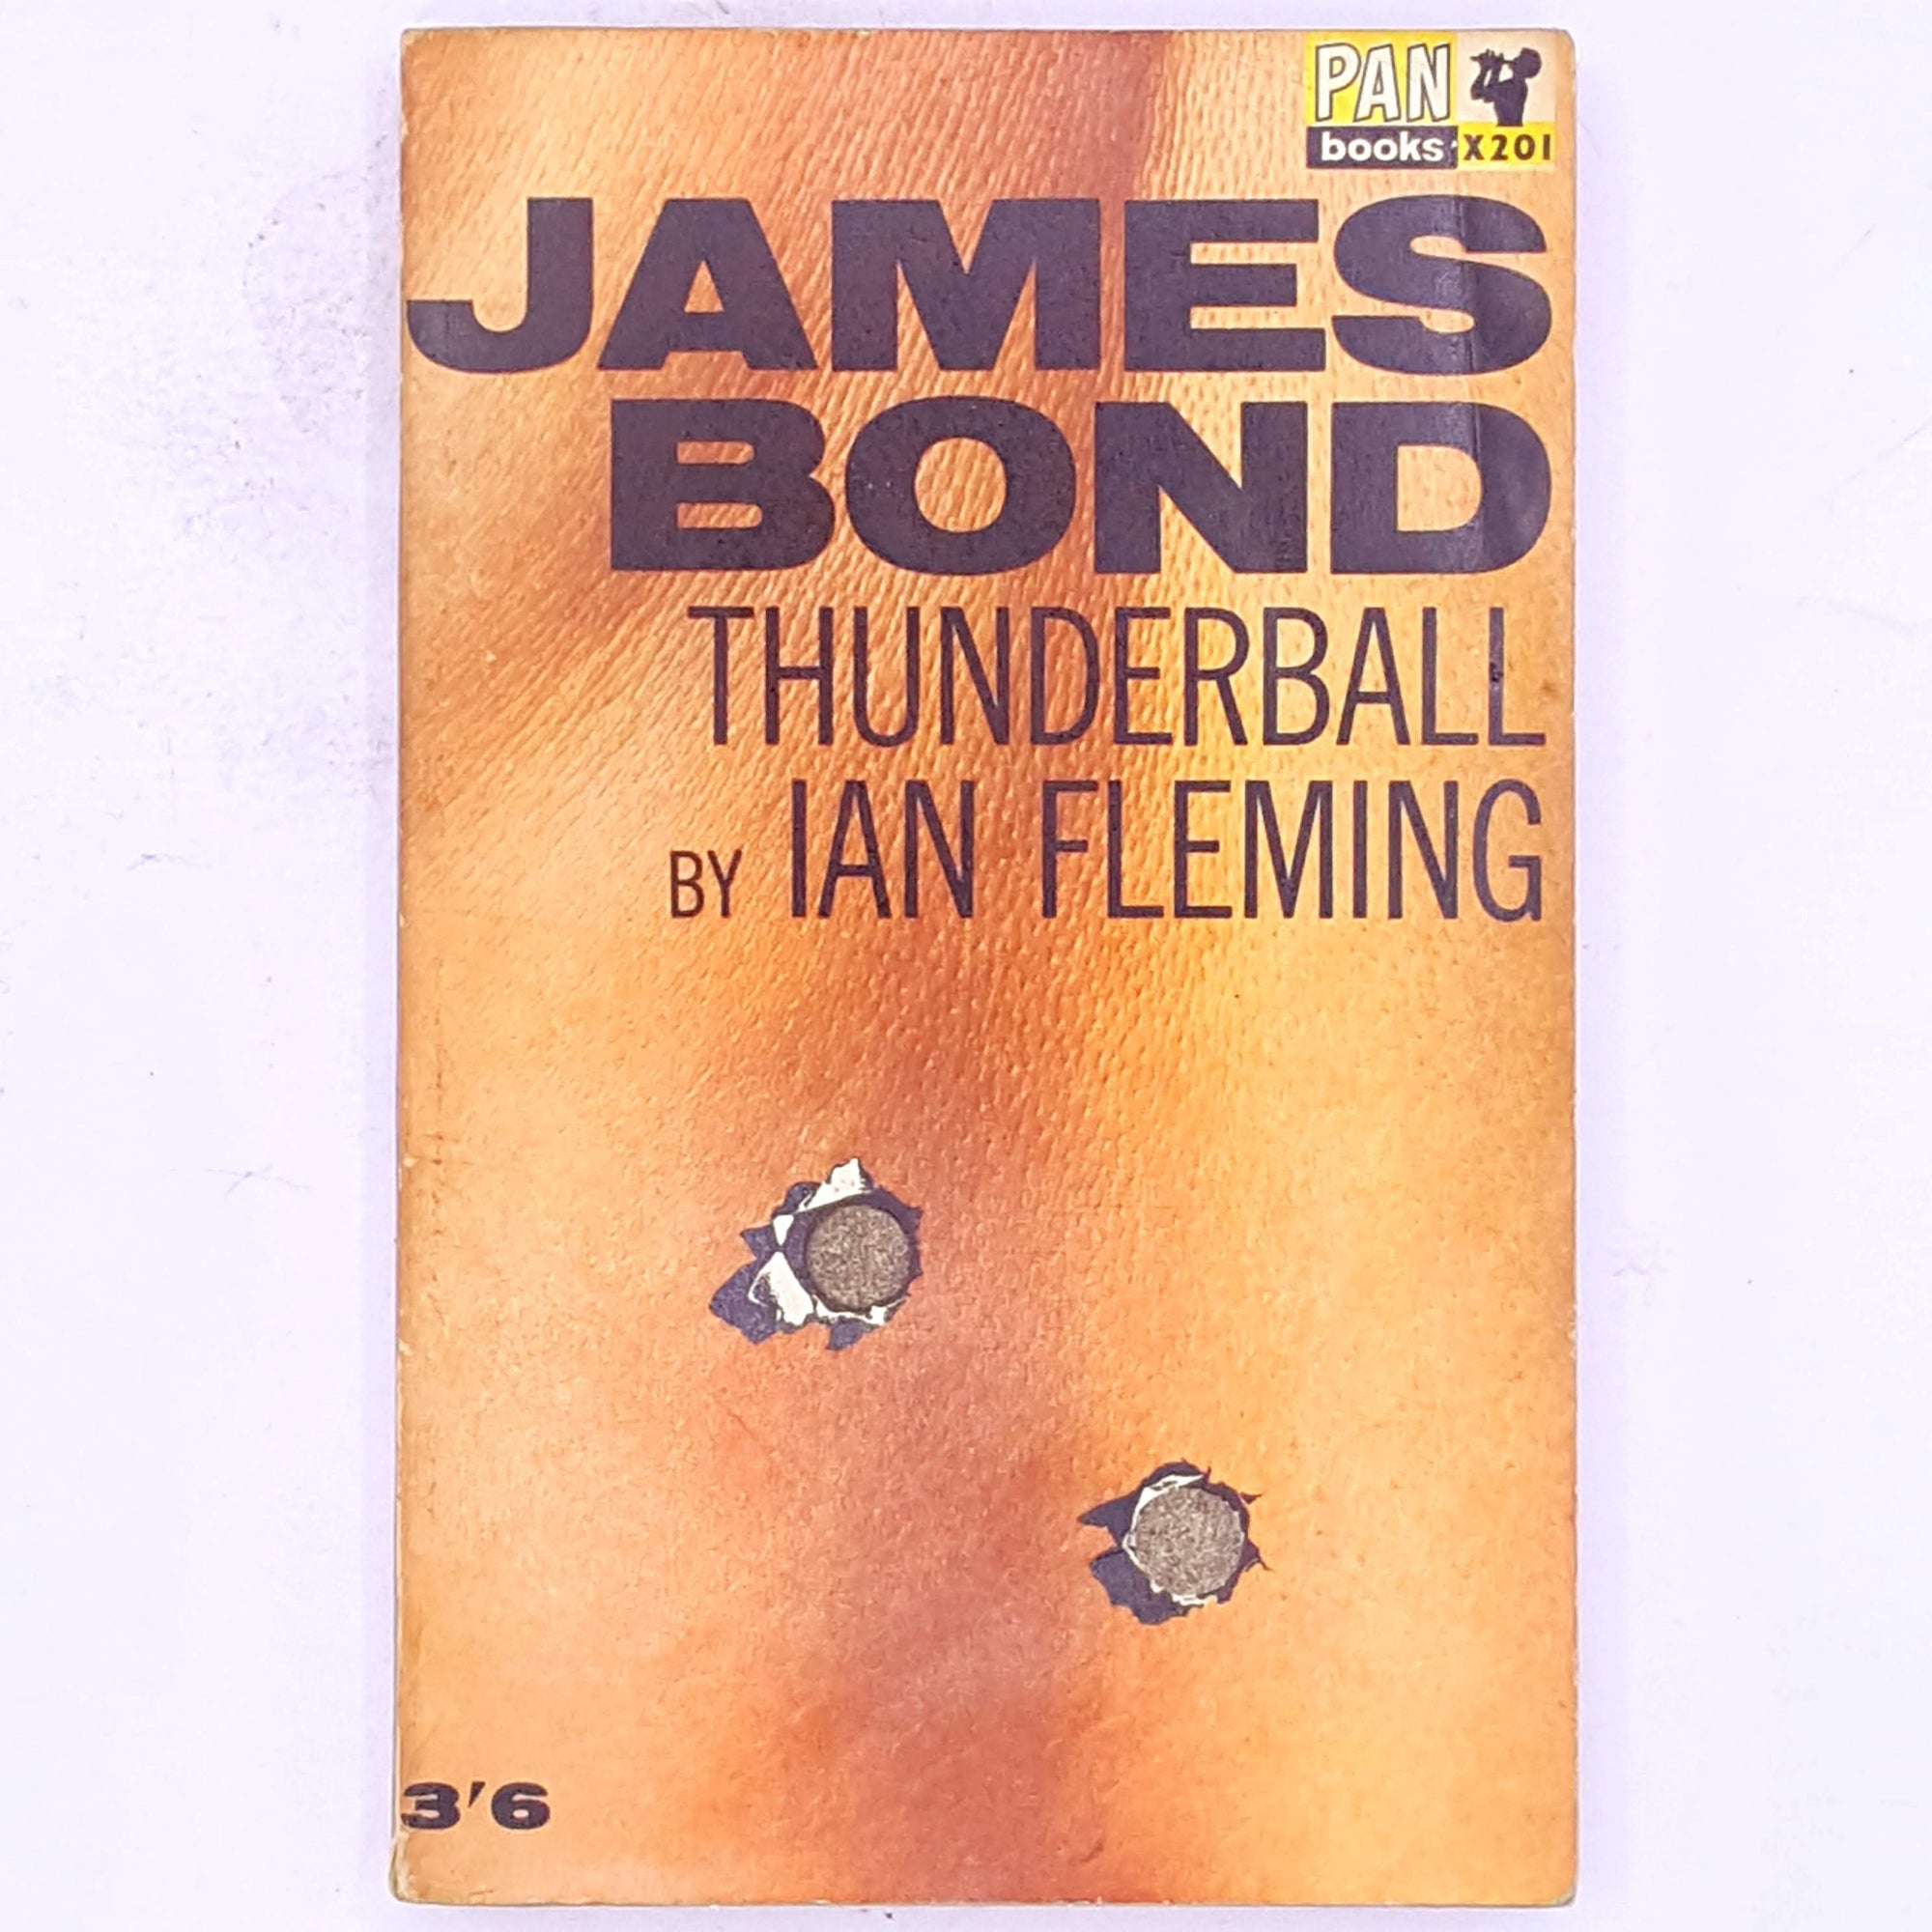 books-ian-fleming-thrift-patterned-country-house-library-British-secret-agent-thriller-secret-service-james-bond-antique-classic-decorative-old-vintage-thunderball-007-spy-crime-mystery-